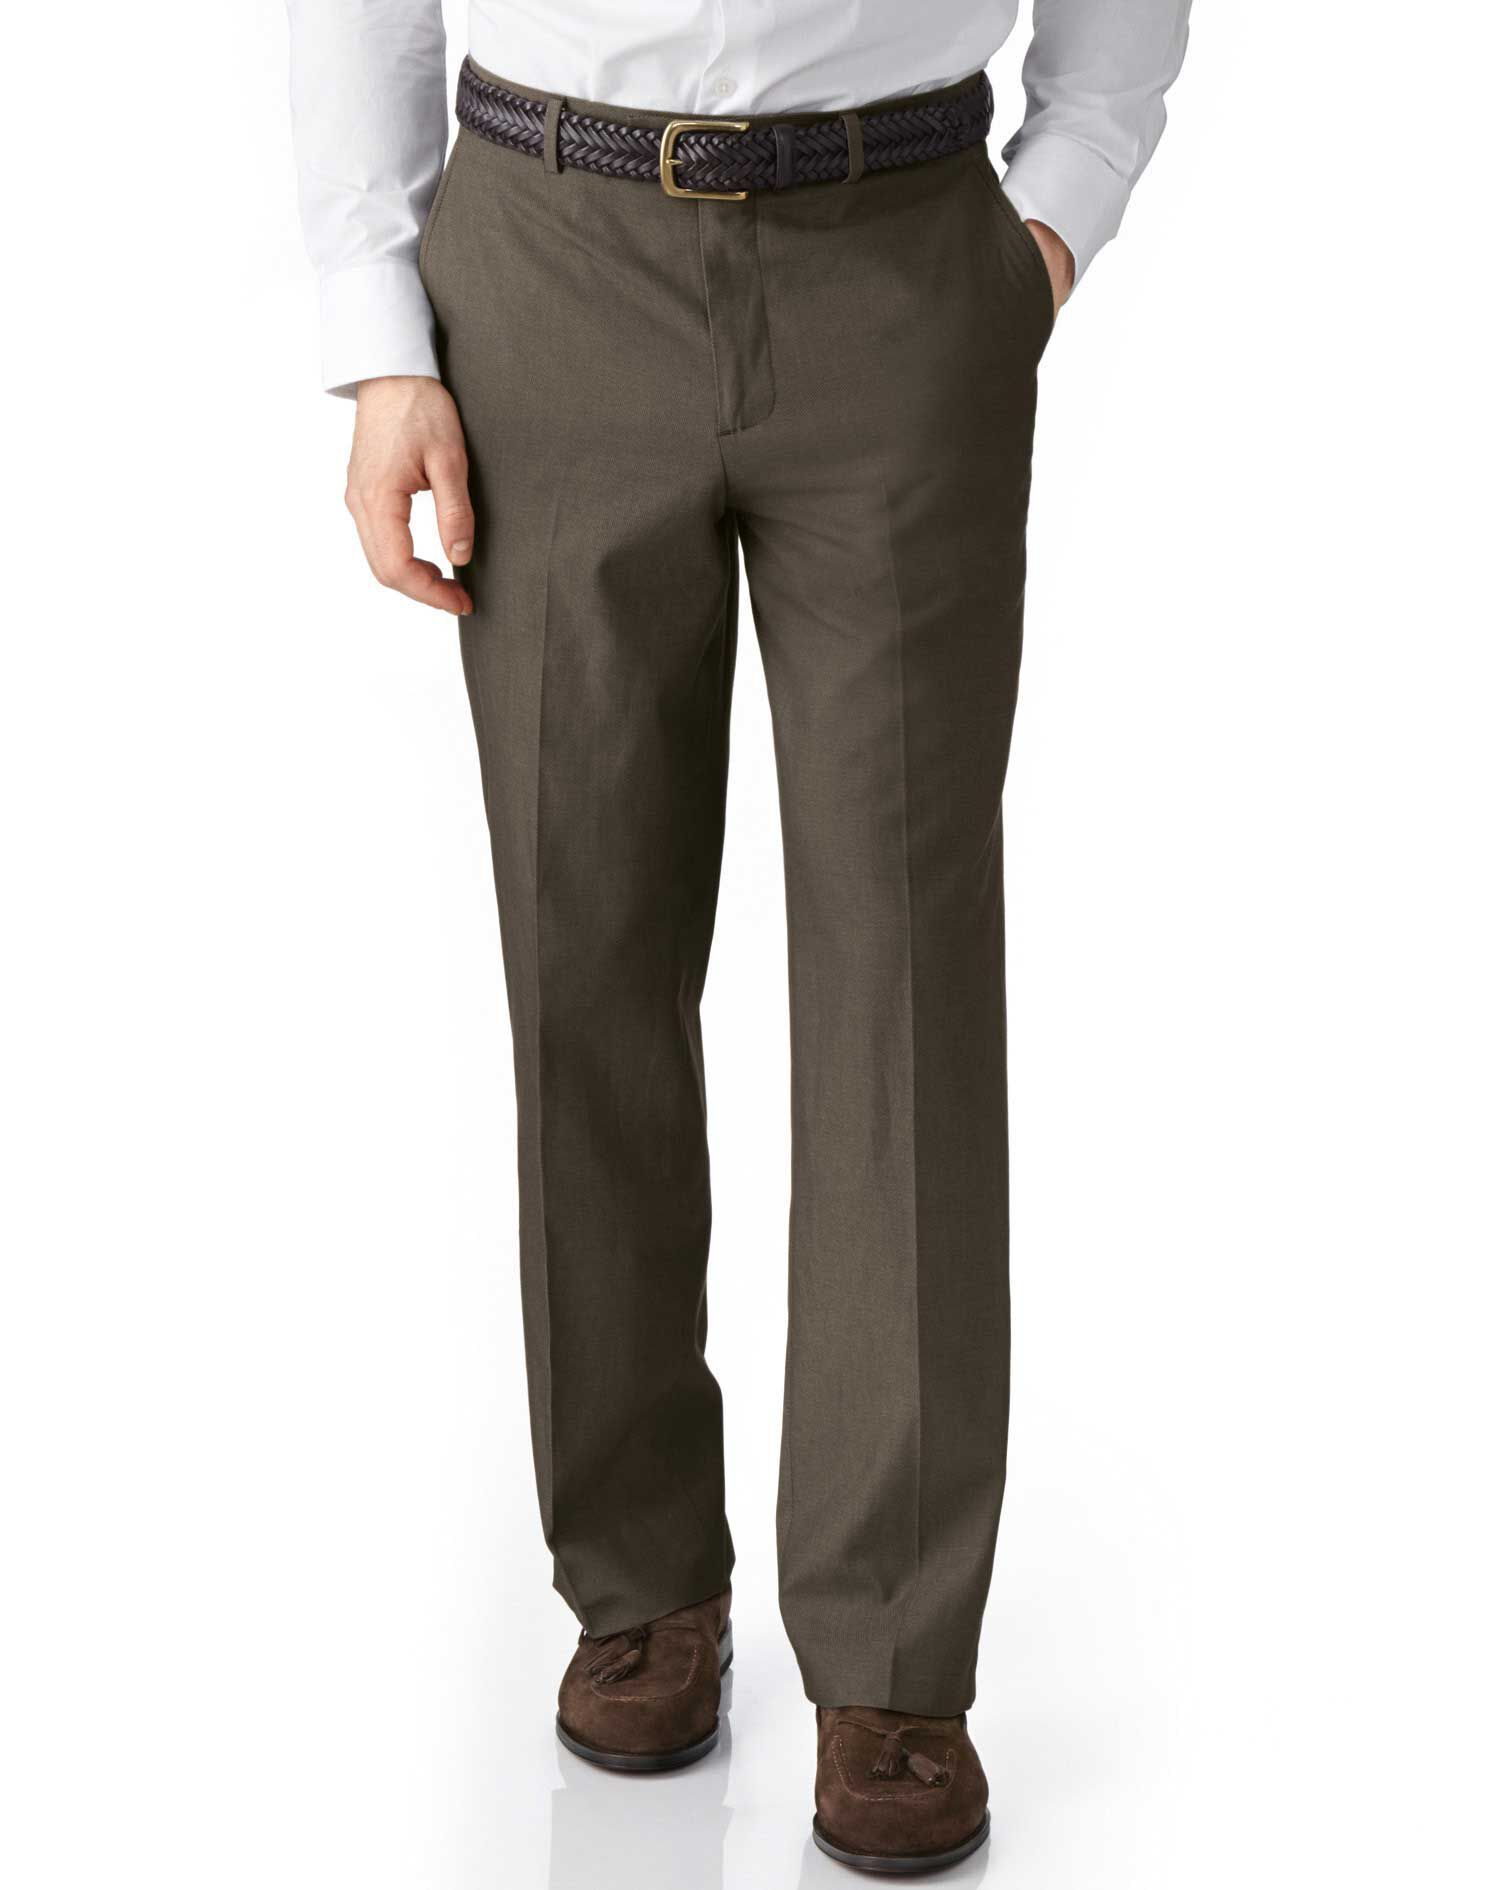 Brown Classic Fit Stretch Cavalry Twill Cotton Chino Trousers Size W40 L34 by Charles Tyrwhitt